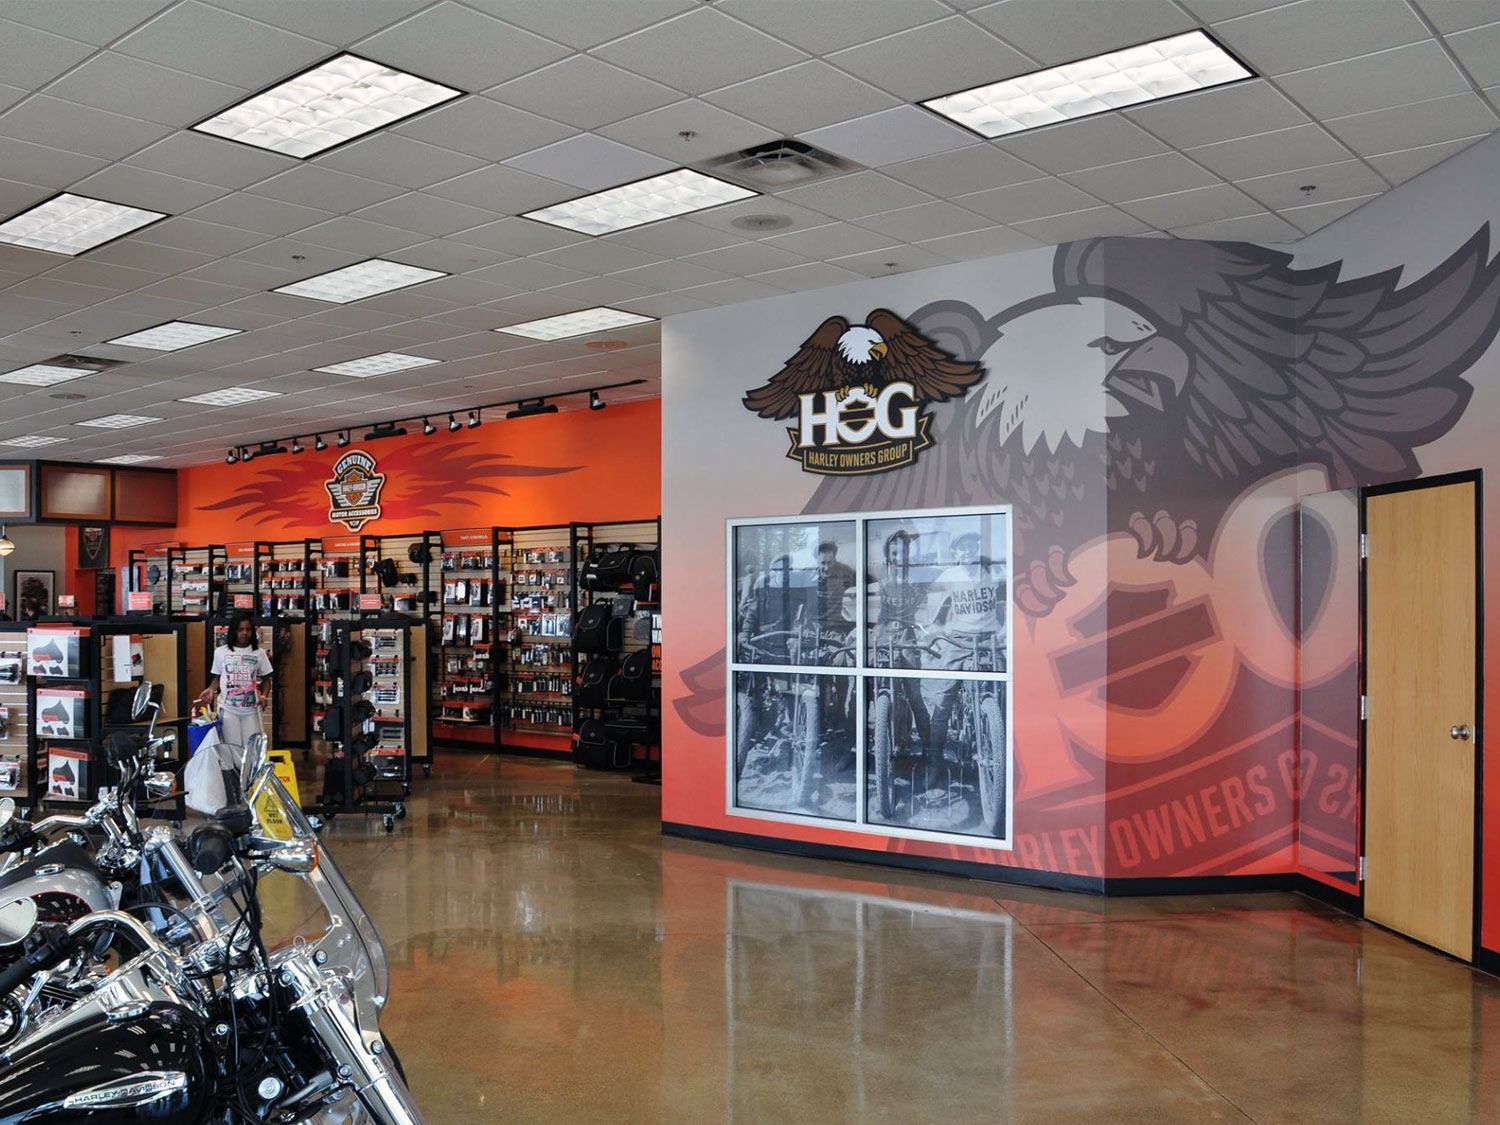 Harley Davidson Wall Graphics and Signage